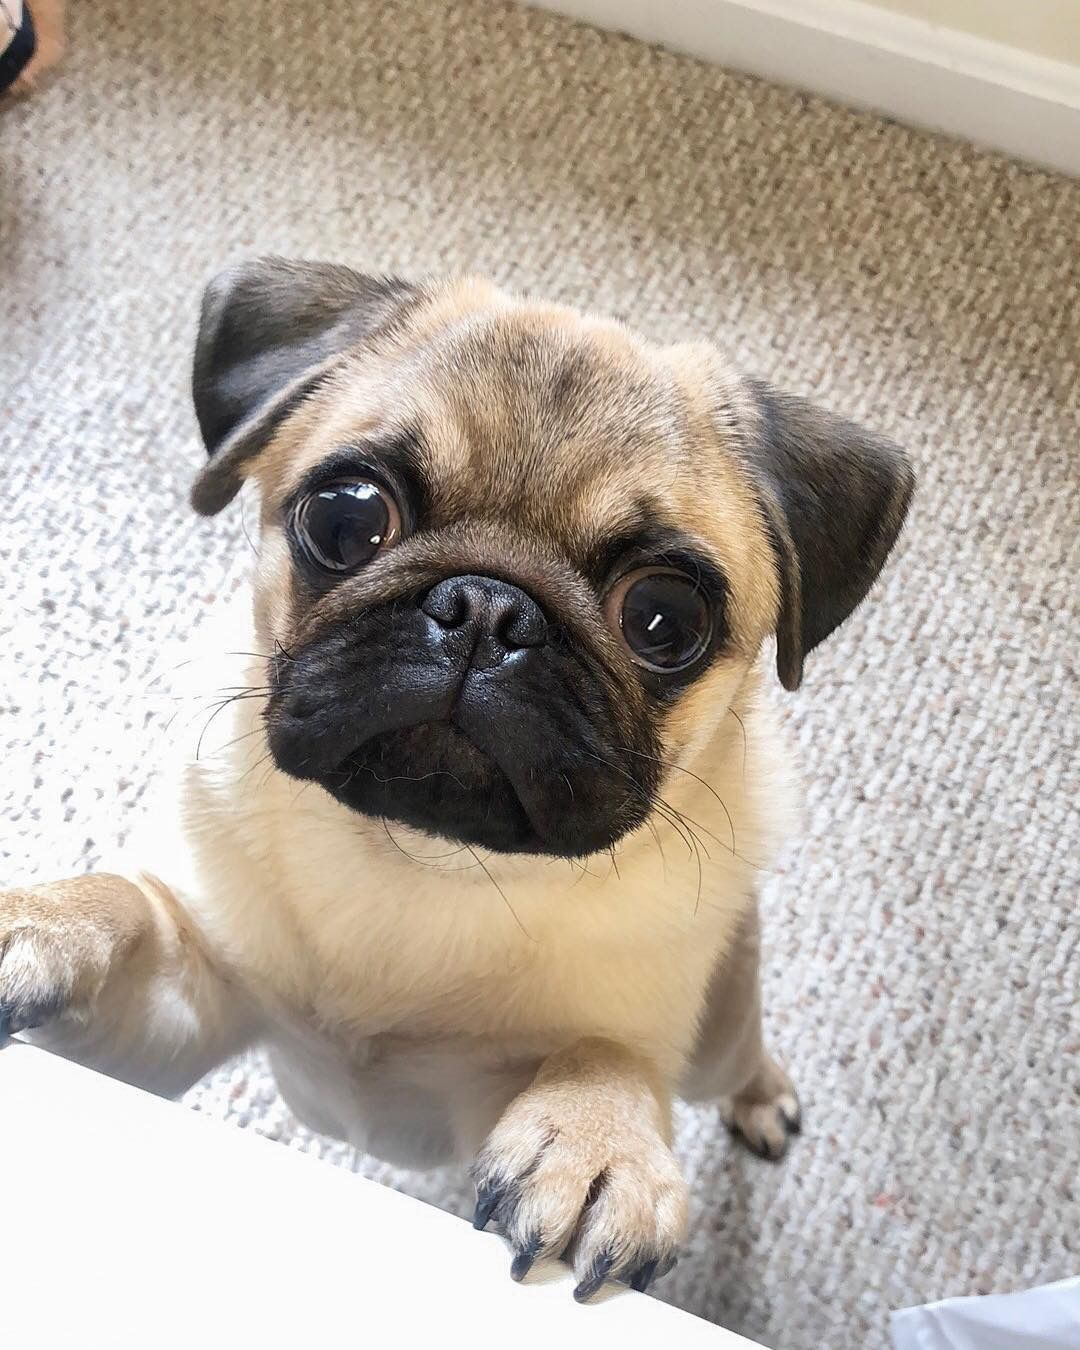 Pin By Julia M Foster On Pugs Cute Pug Puppies Cute Pugs Baby Pugs